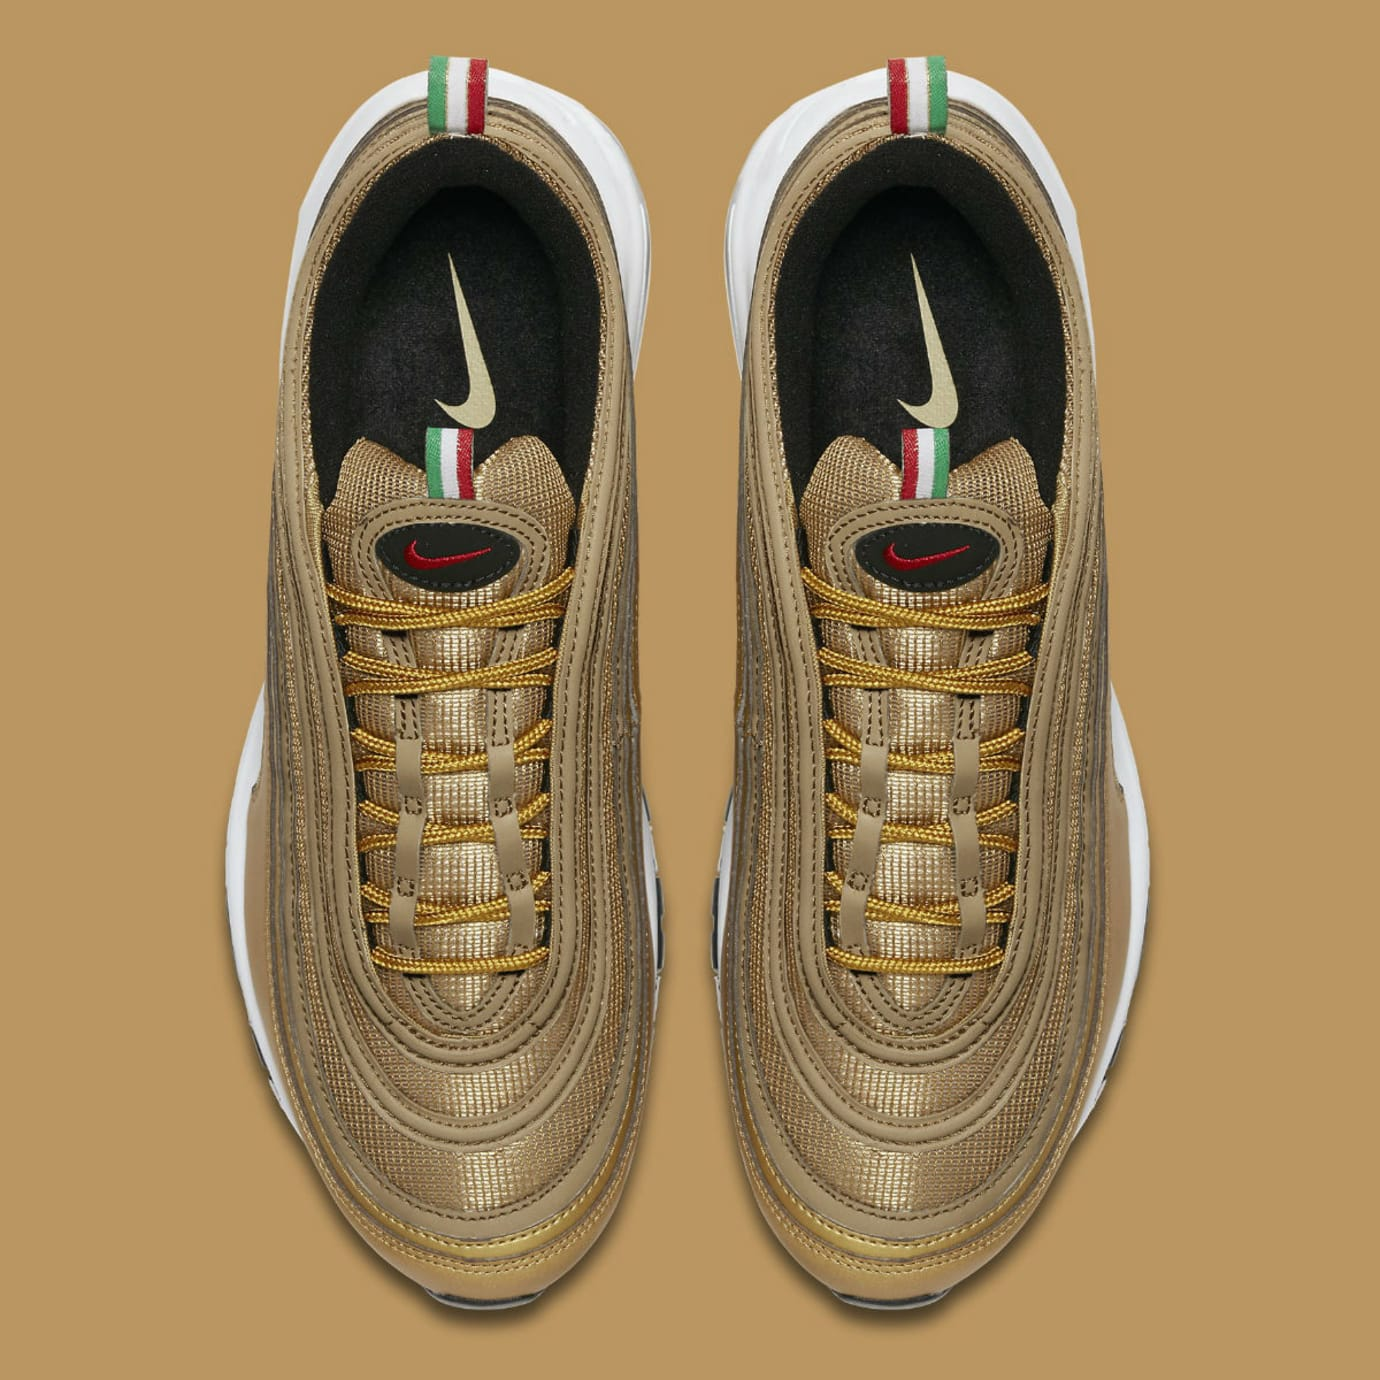 6e362d1237f Nike Air Max 97 Italy Flag Gold Release Date AJ8056-700 Top